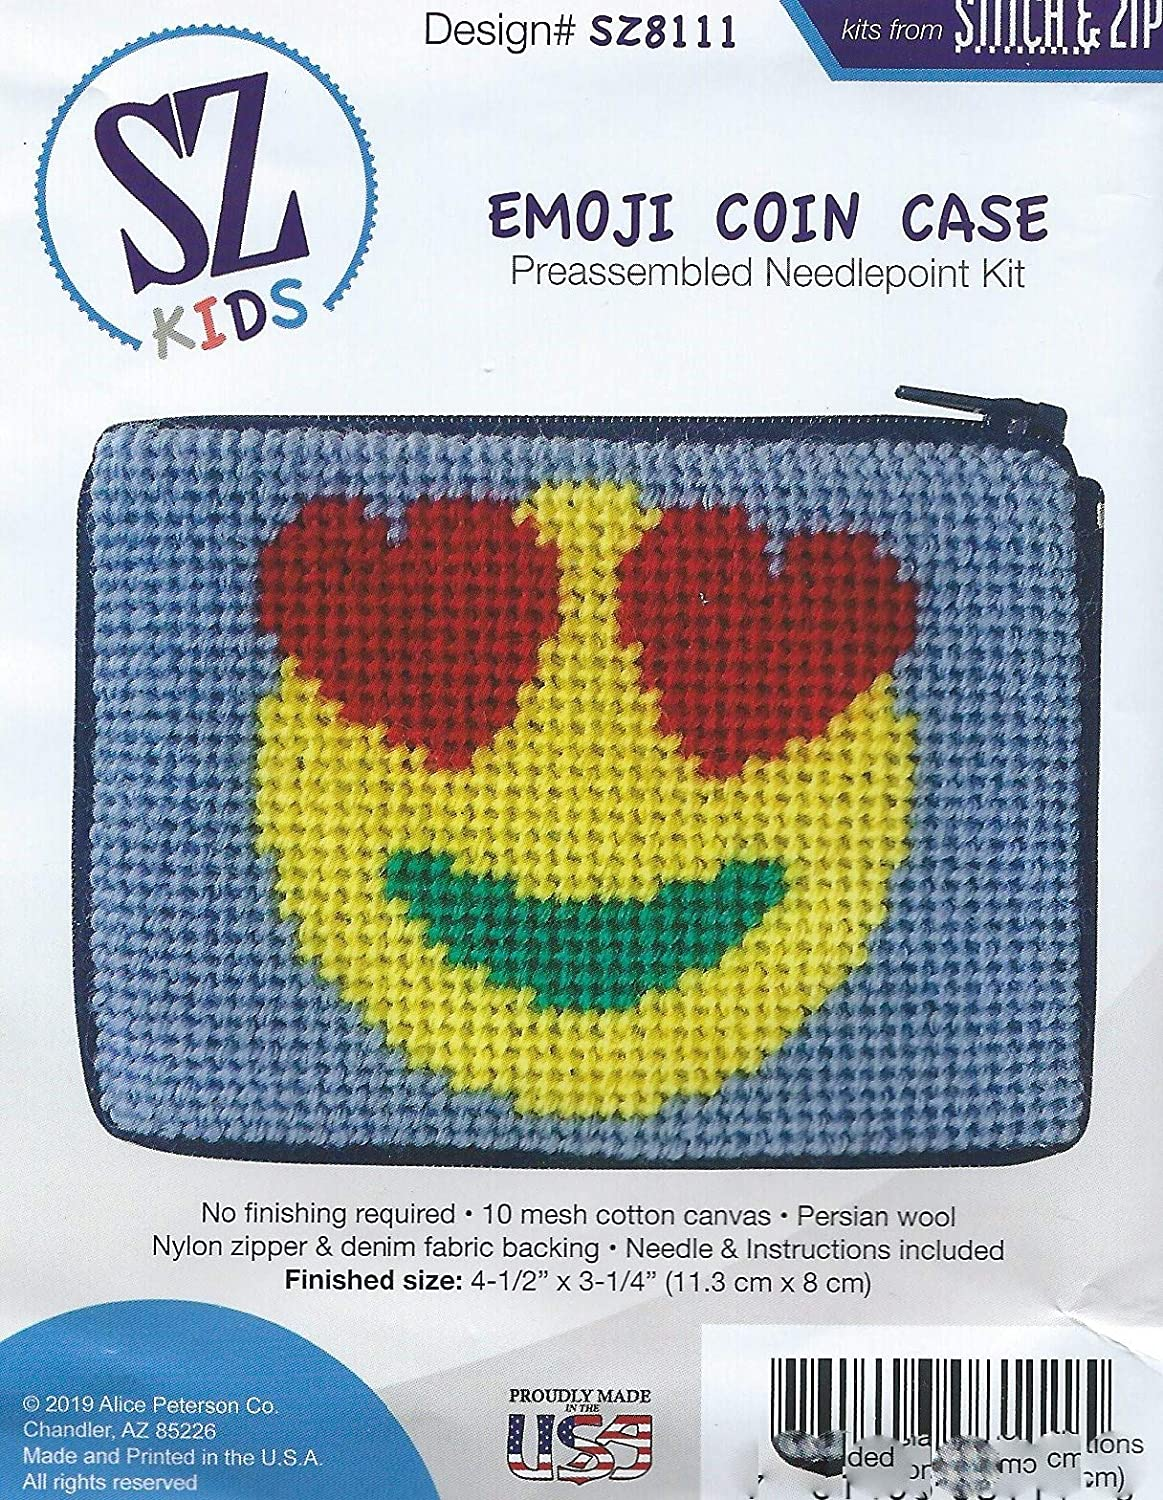 Emoji Needlepoint Coin Purse Kit with Persian Wool